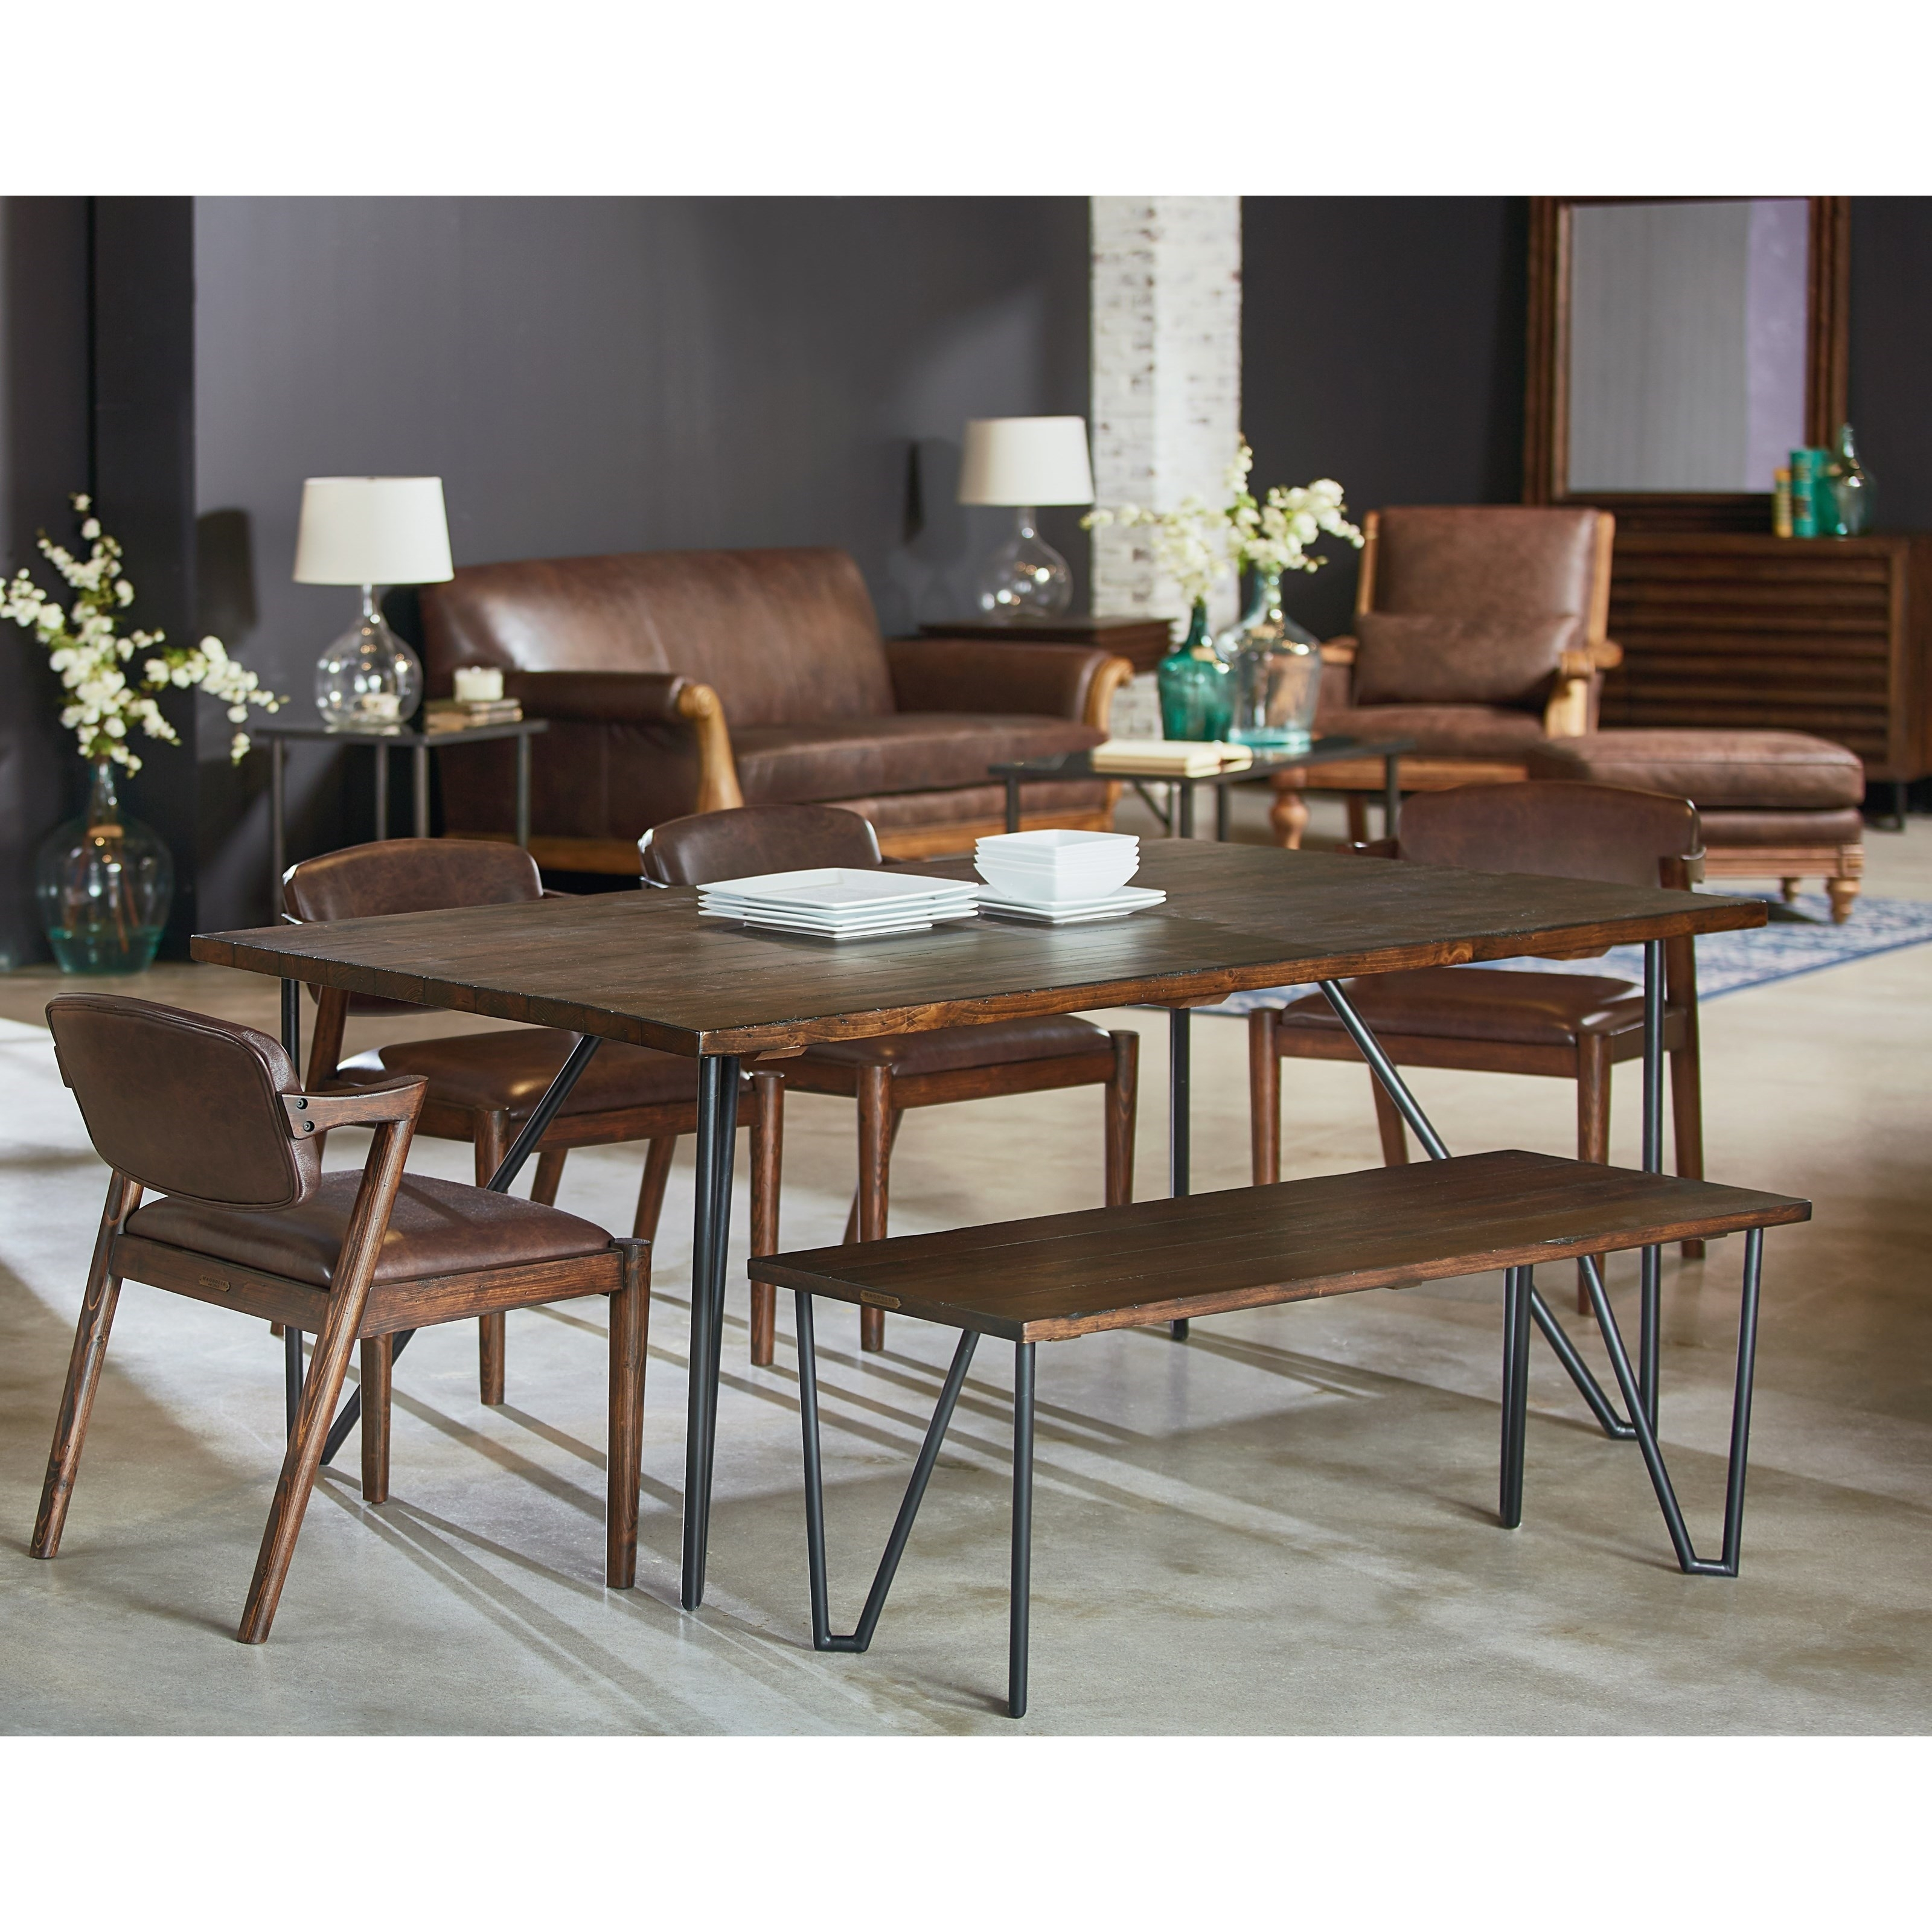 Magnolia Home Reed Arm Chairs With Favorite 6 Piece Table And Chair Set With Bench And Metal Hairpin Legs (#13 of 20)